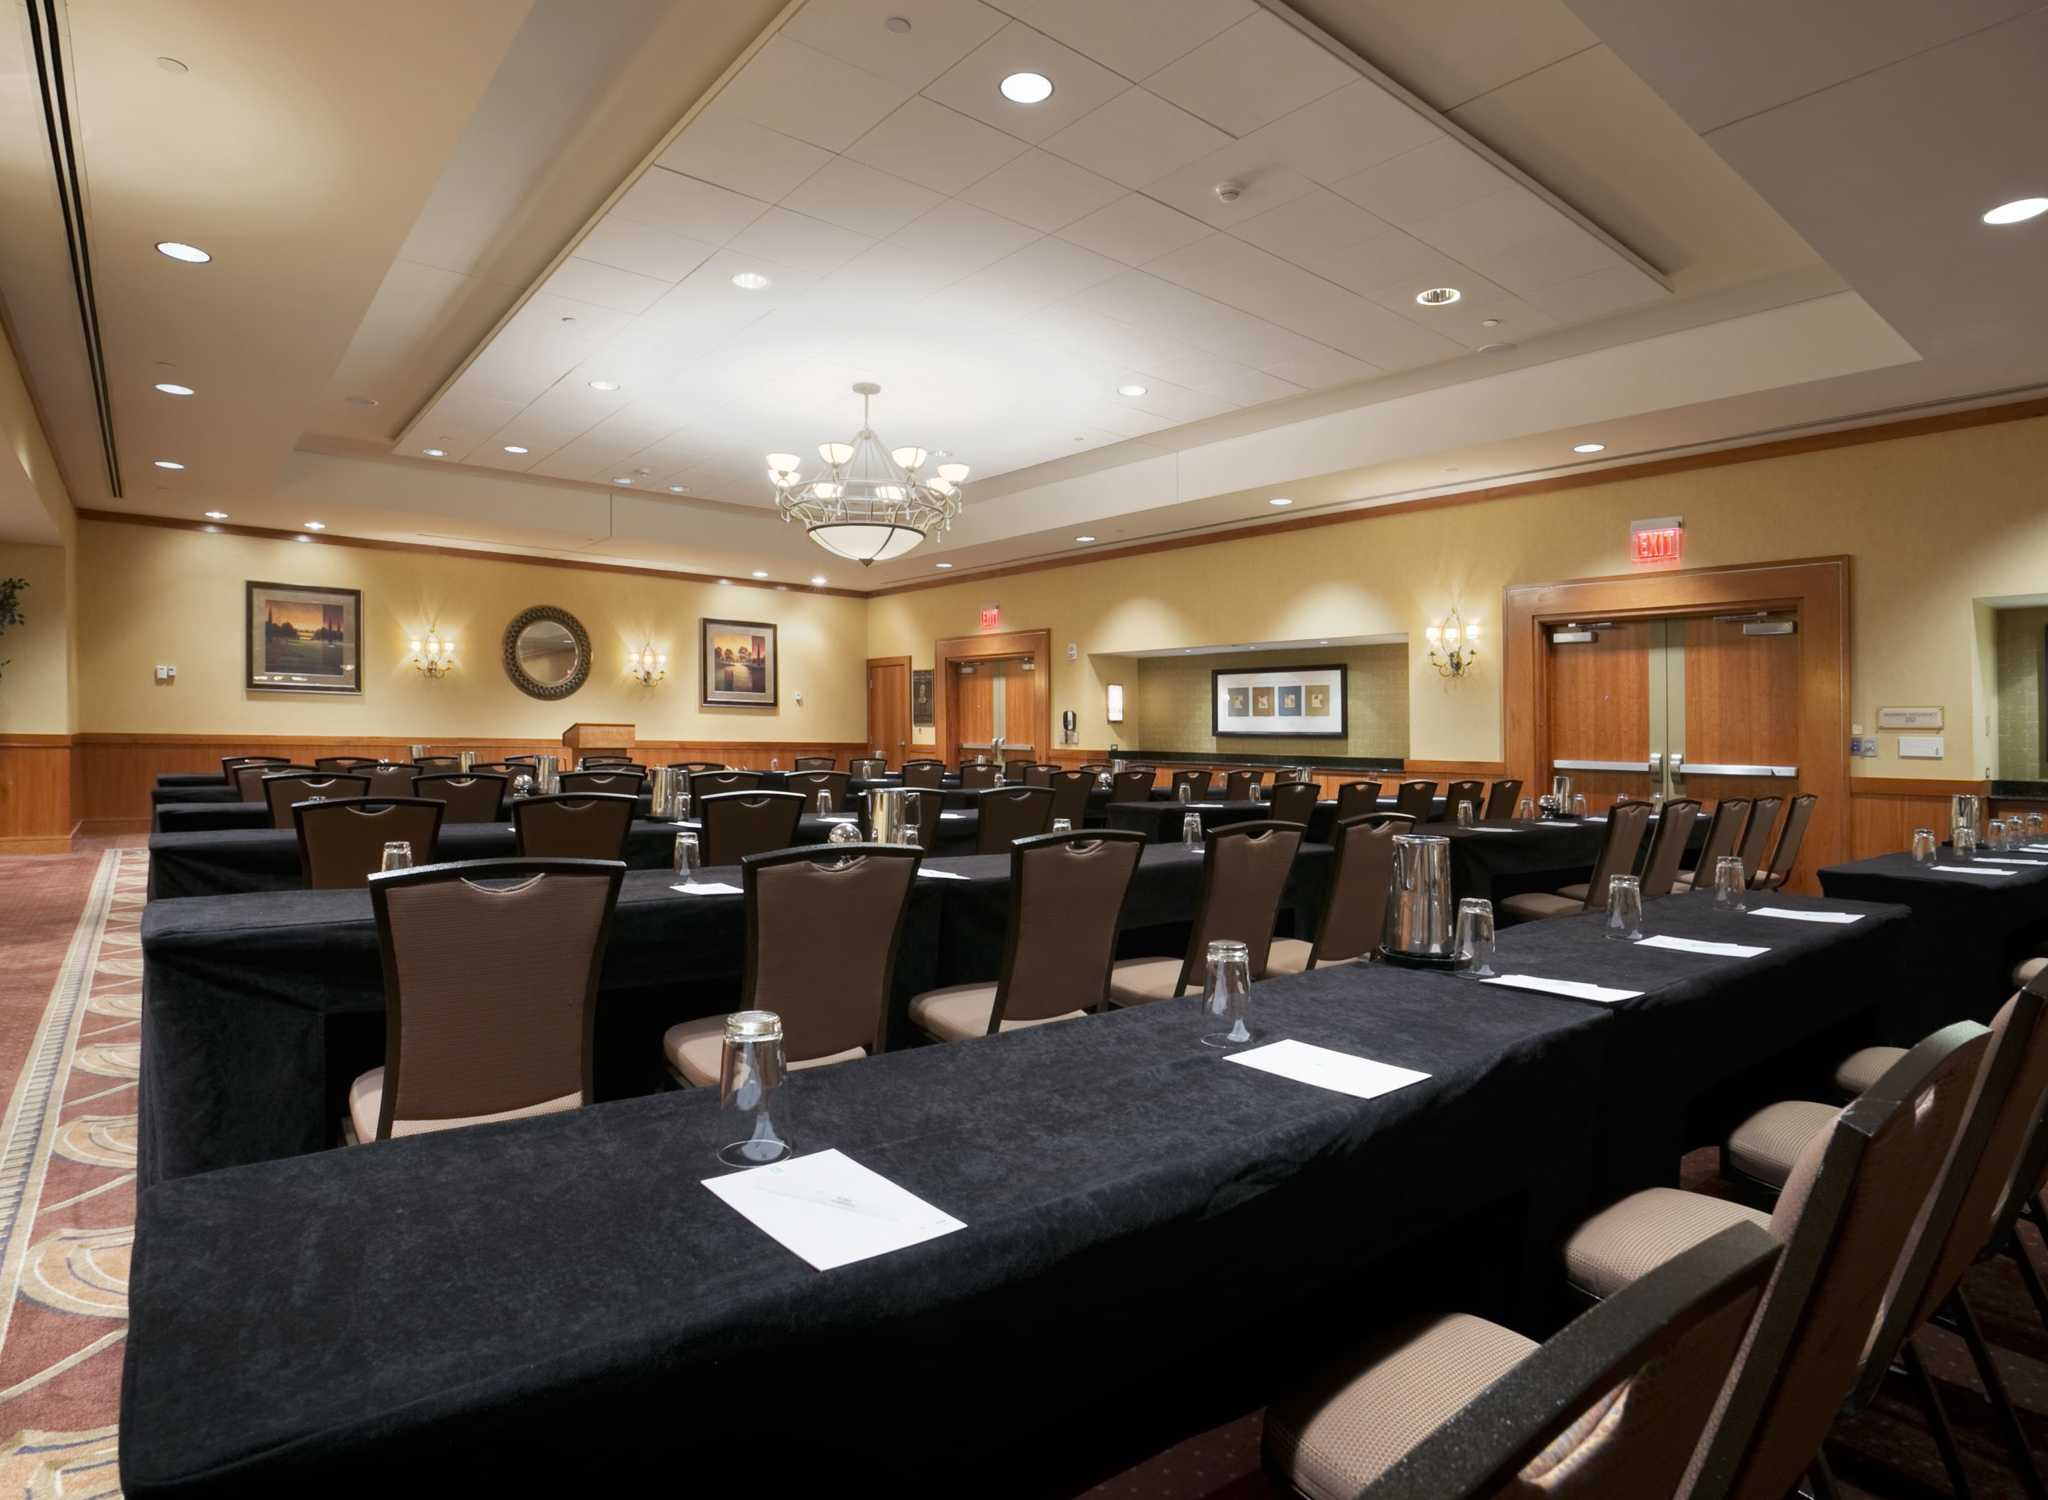 Embassy Suites Washington D.C. – Convention Center hotel - Ballroom